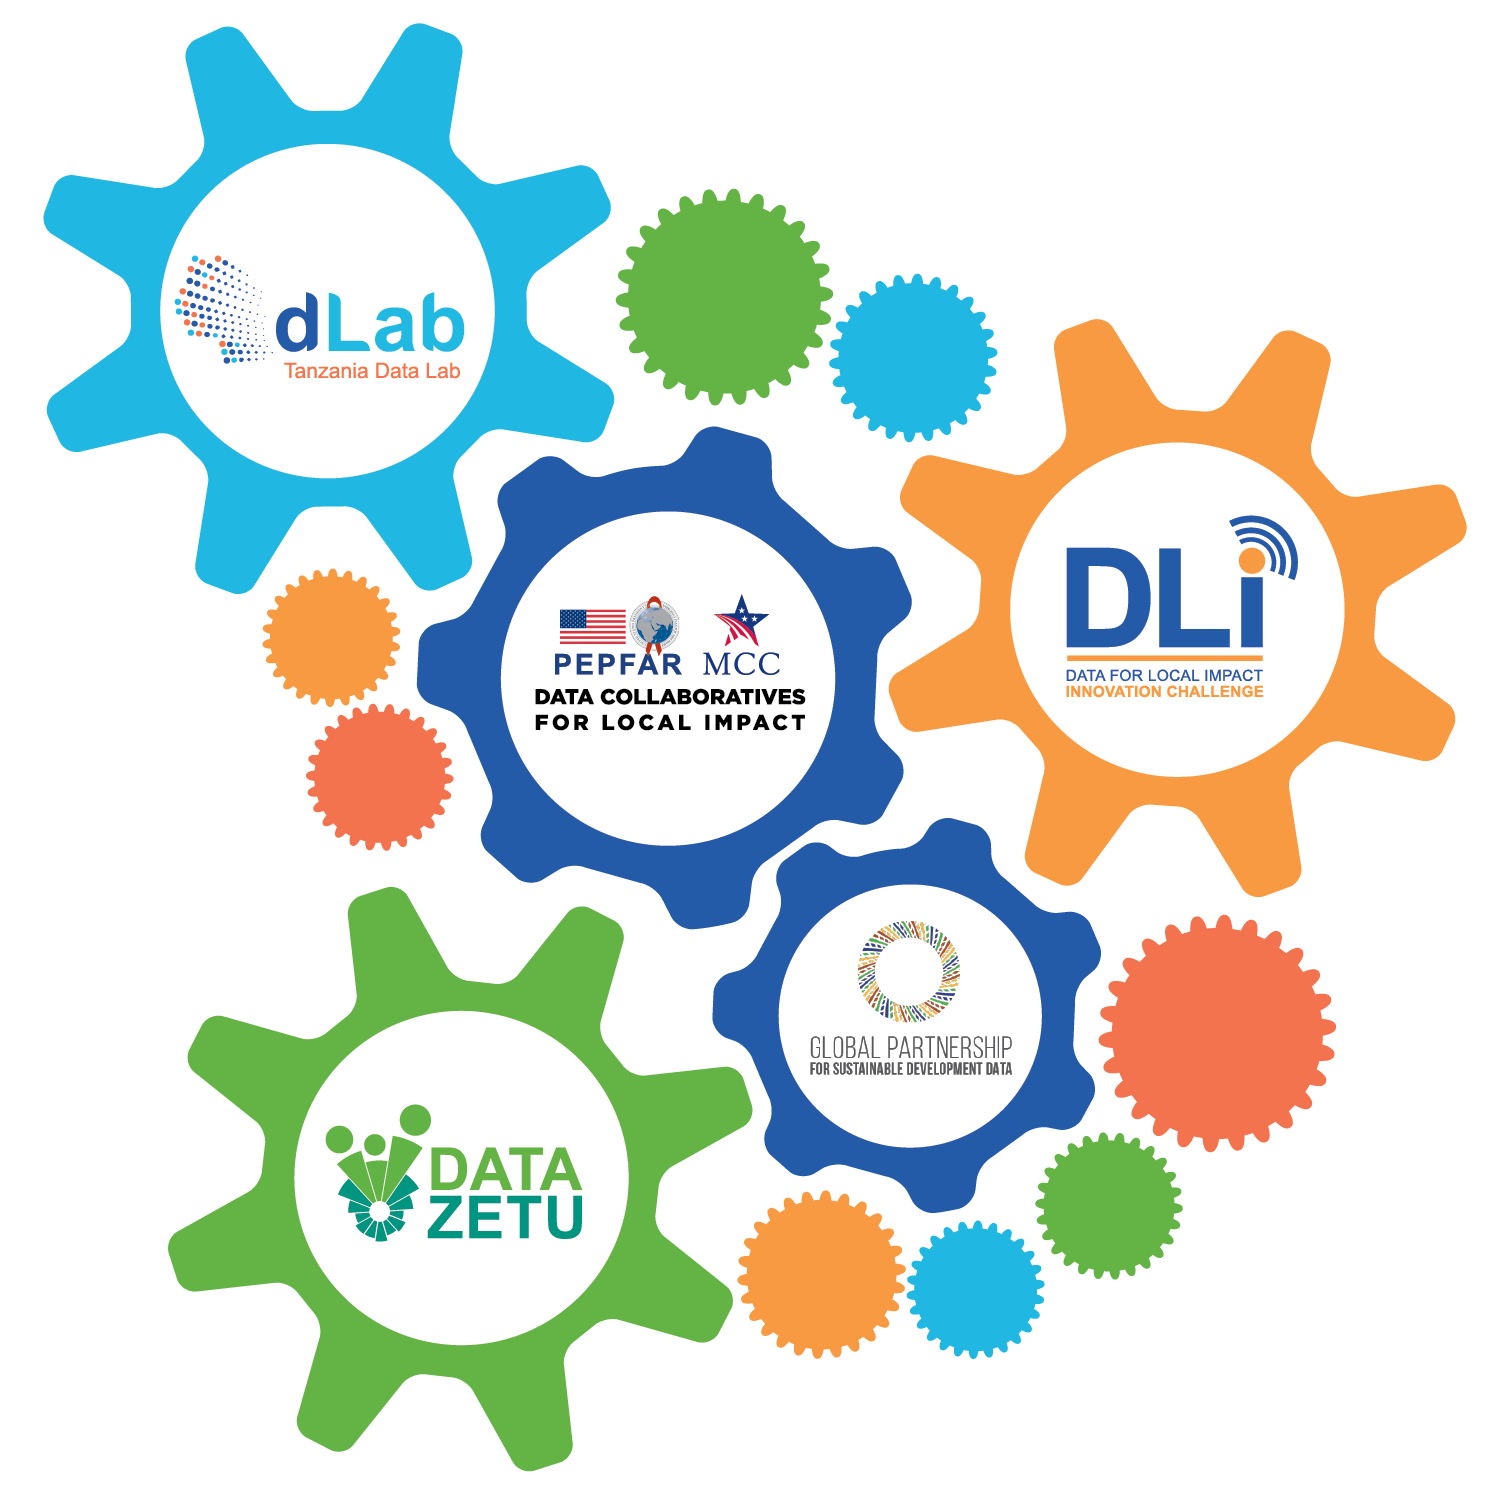 Logo: MCC PEPFAR Data Collaboratives for Local Impact